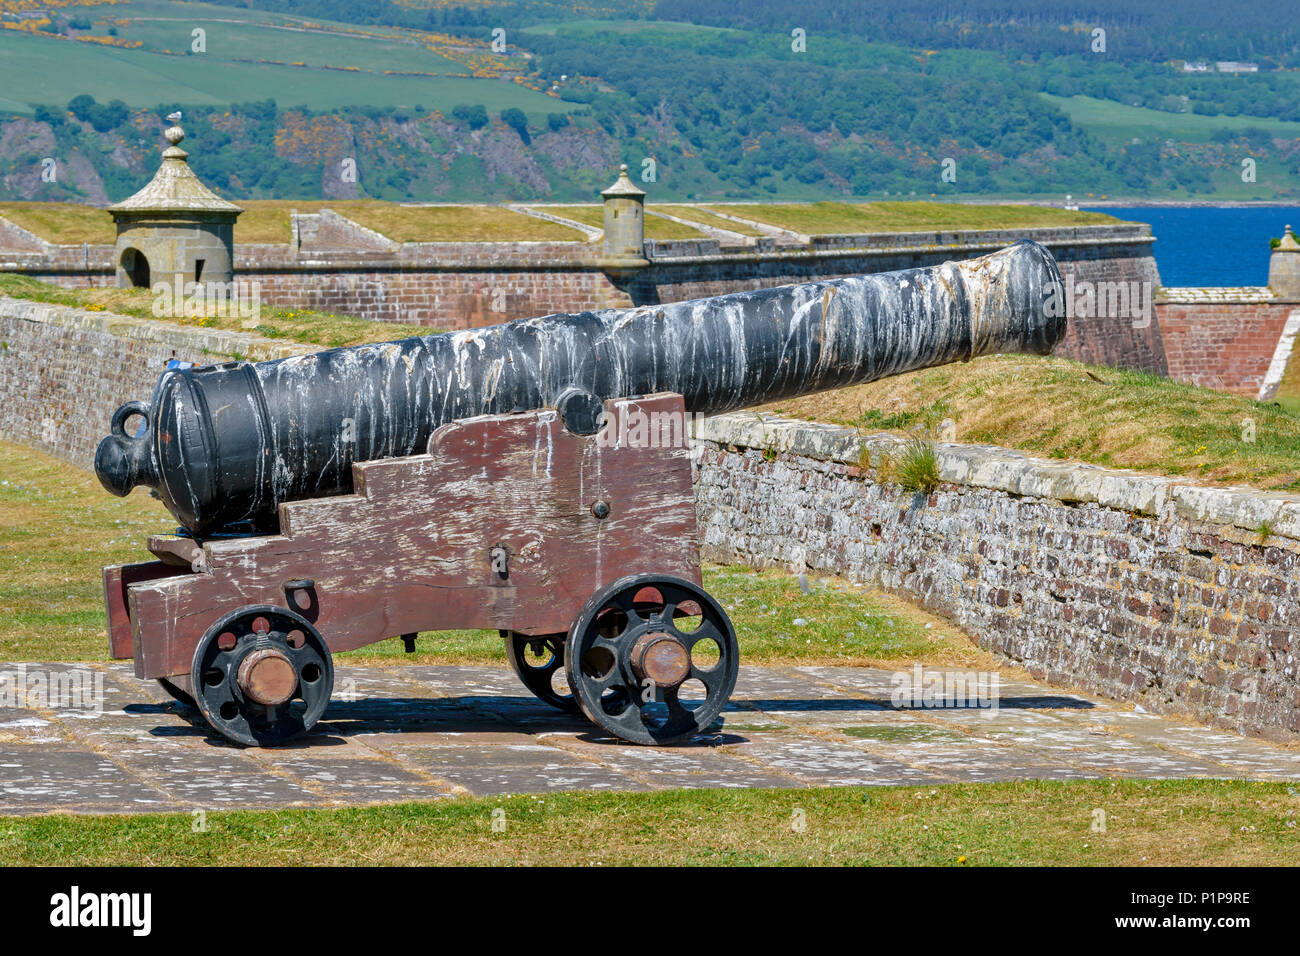 FORT GEORGE ARDERSIER INVERNESS SCOTLAND FORTIFICATIONS CANNON COVERED DEEPLY IN SEAGULL DROPPINGS - Stock Image